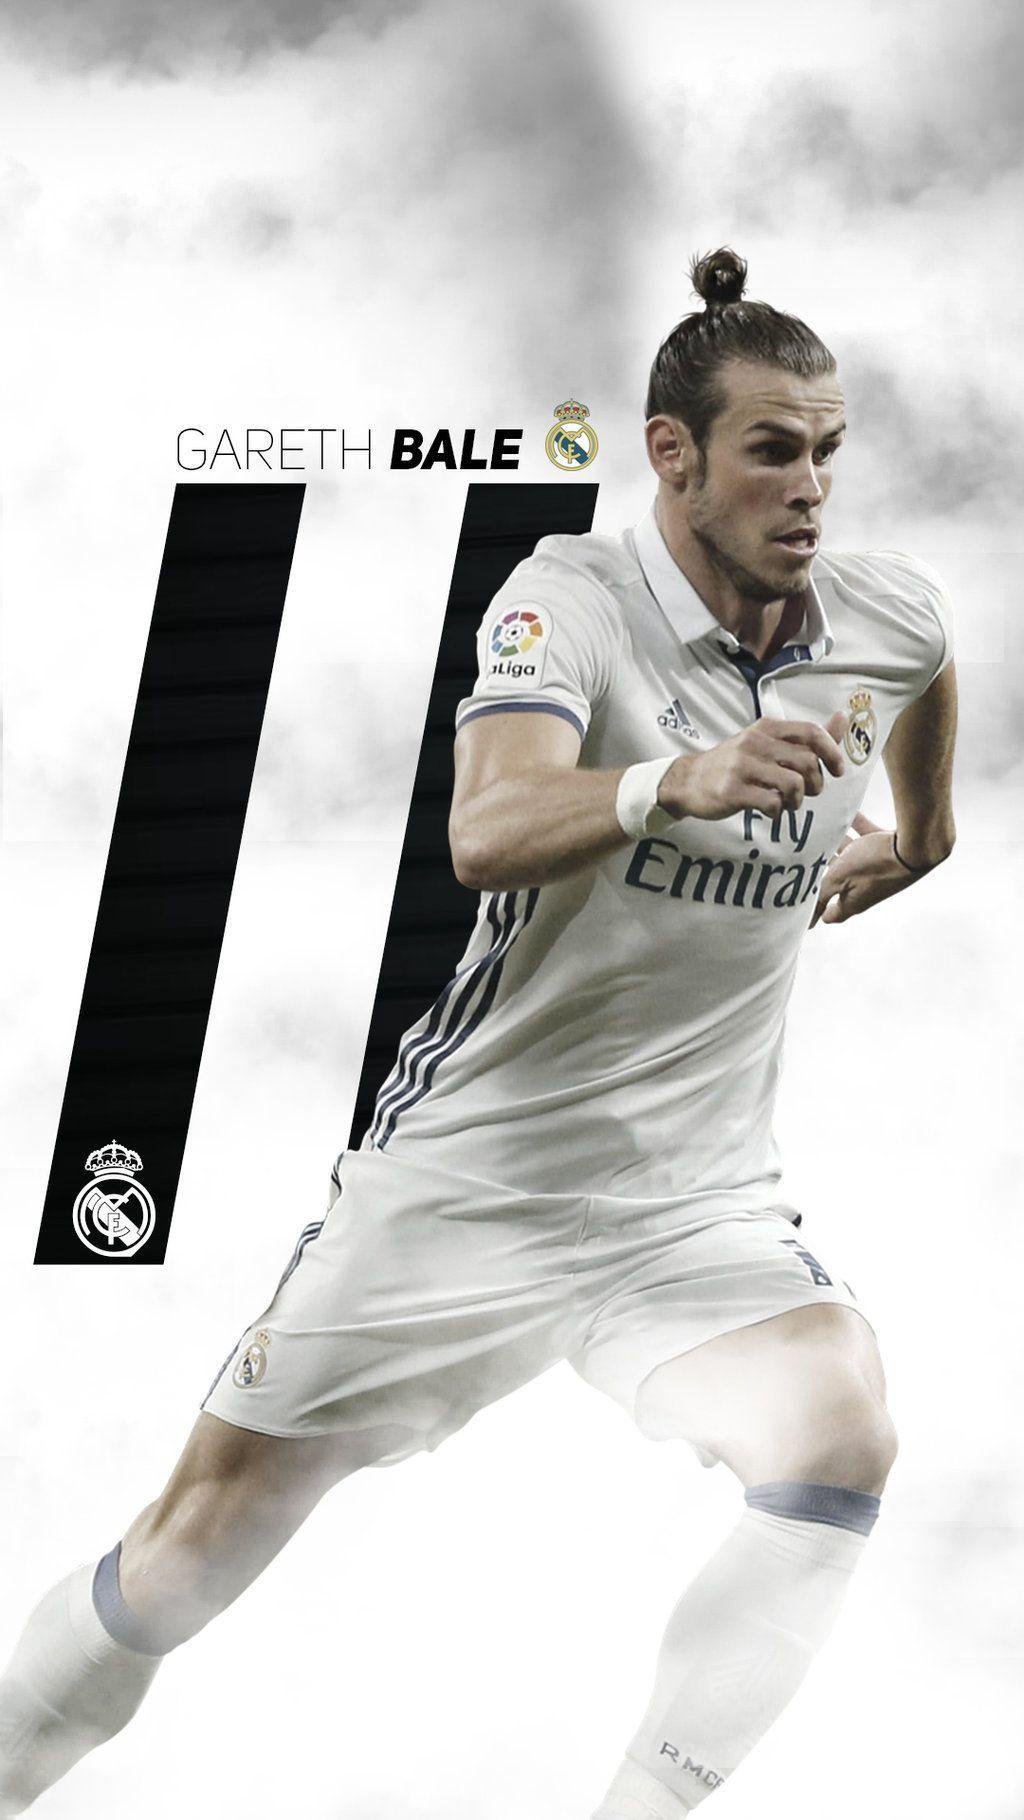 gareth bale 2017 wallpapers wallpaper cave